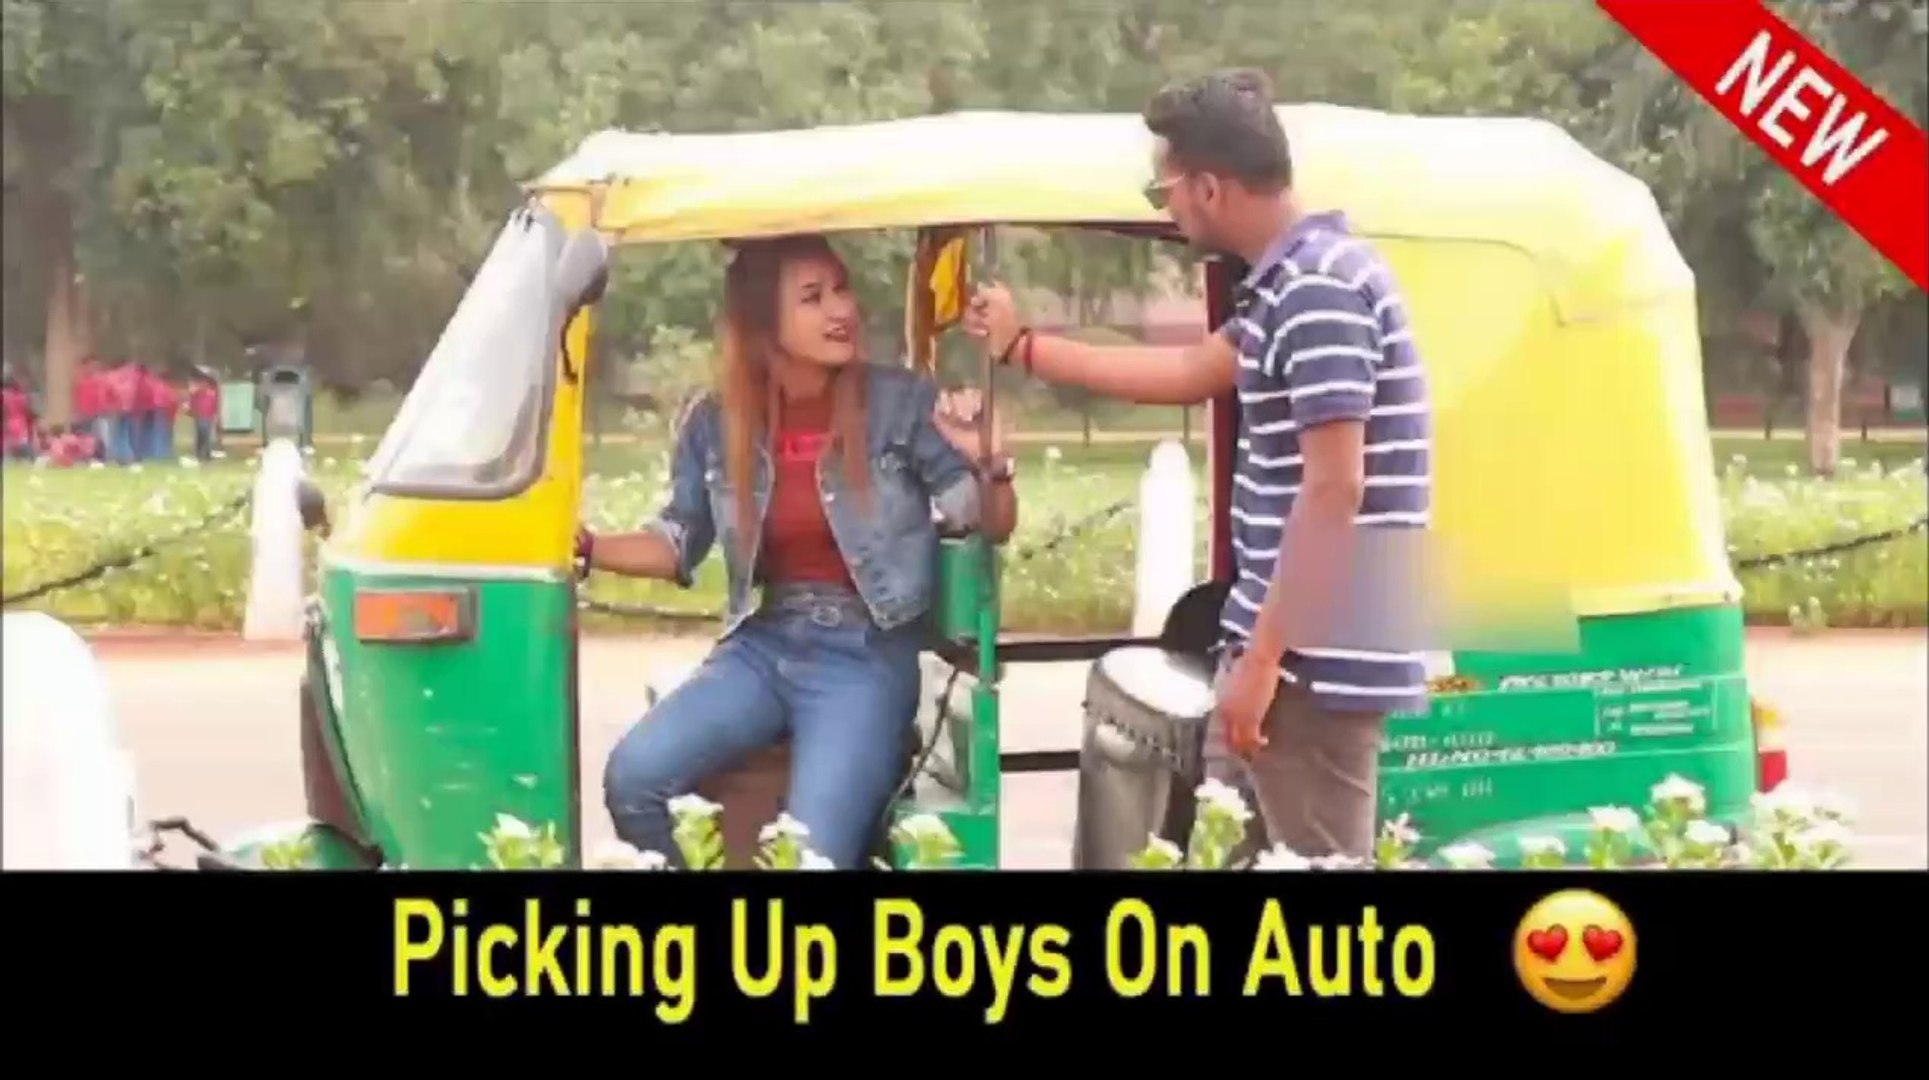 Picking Up Boys On Auto || Rits Dhawan  prank in India 2019,prank ,prank in 2019 ,best girl prank,be